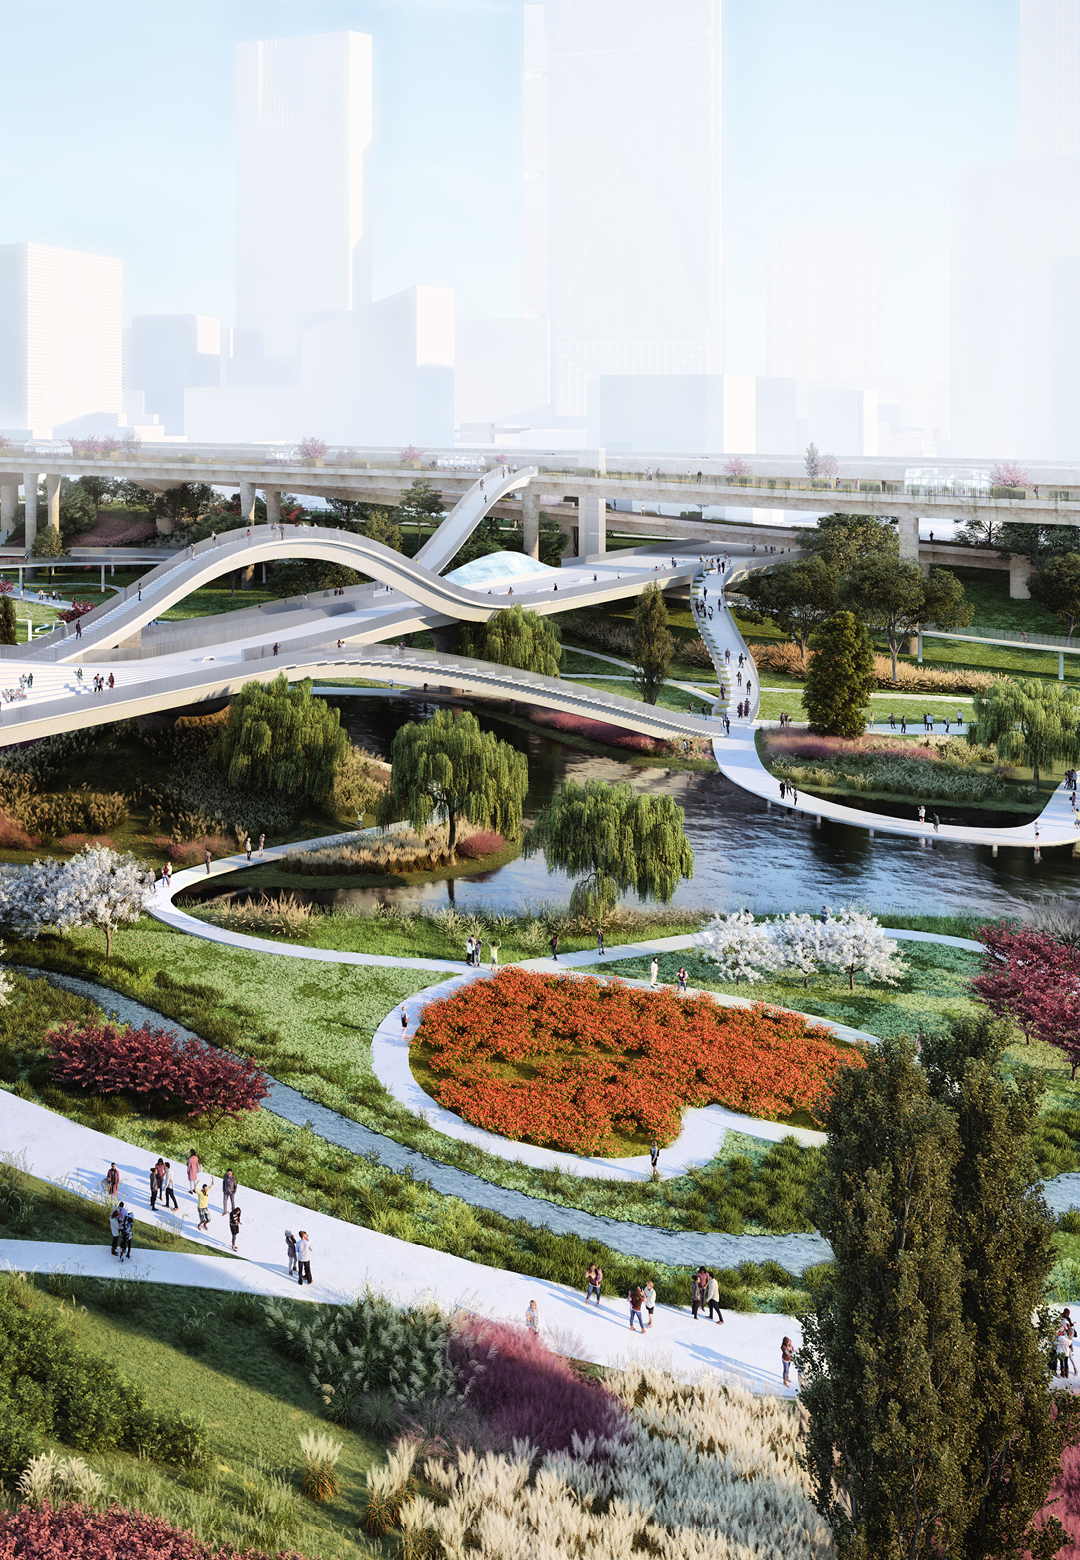 'The Weaves' is a redesign of the Tancheon valley and waterfront by MVRDV - the bridge| The Weaves | MVRDV | STIRworld